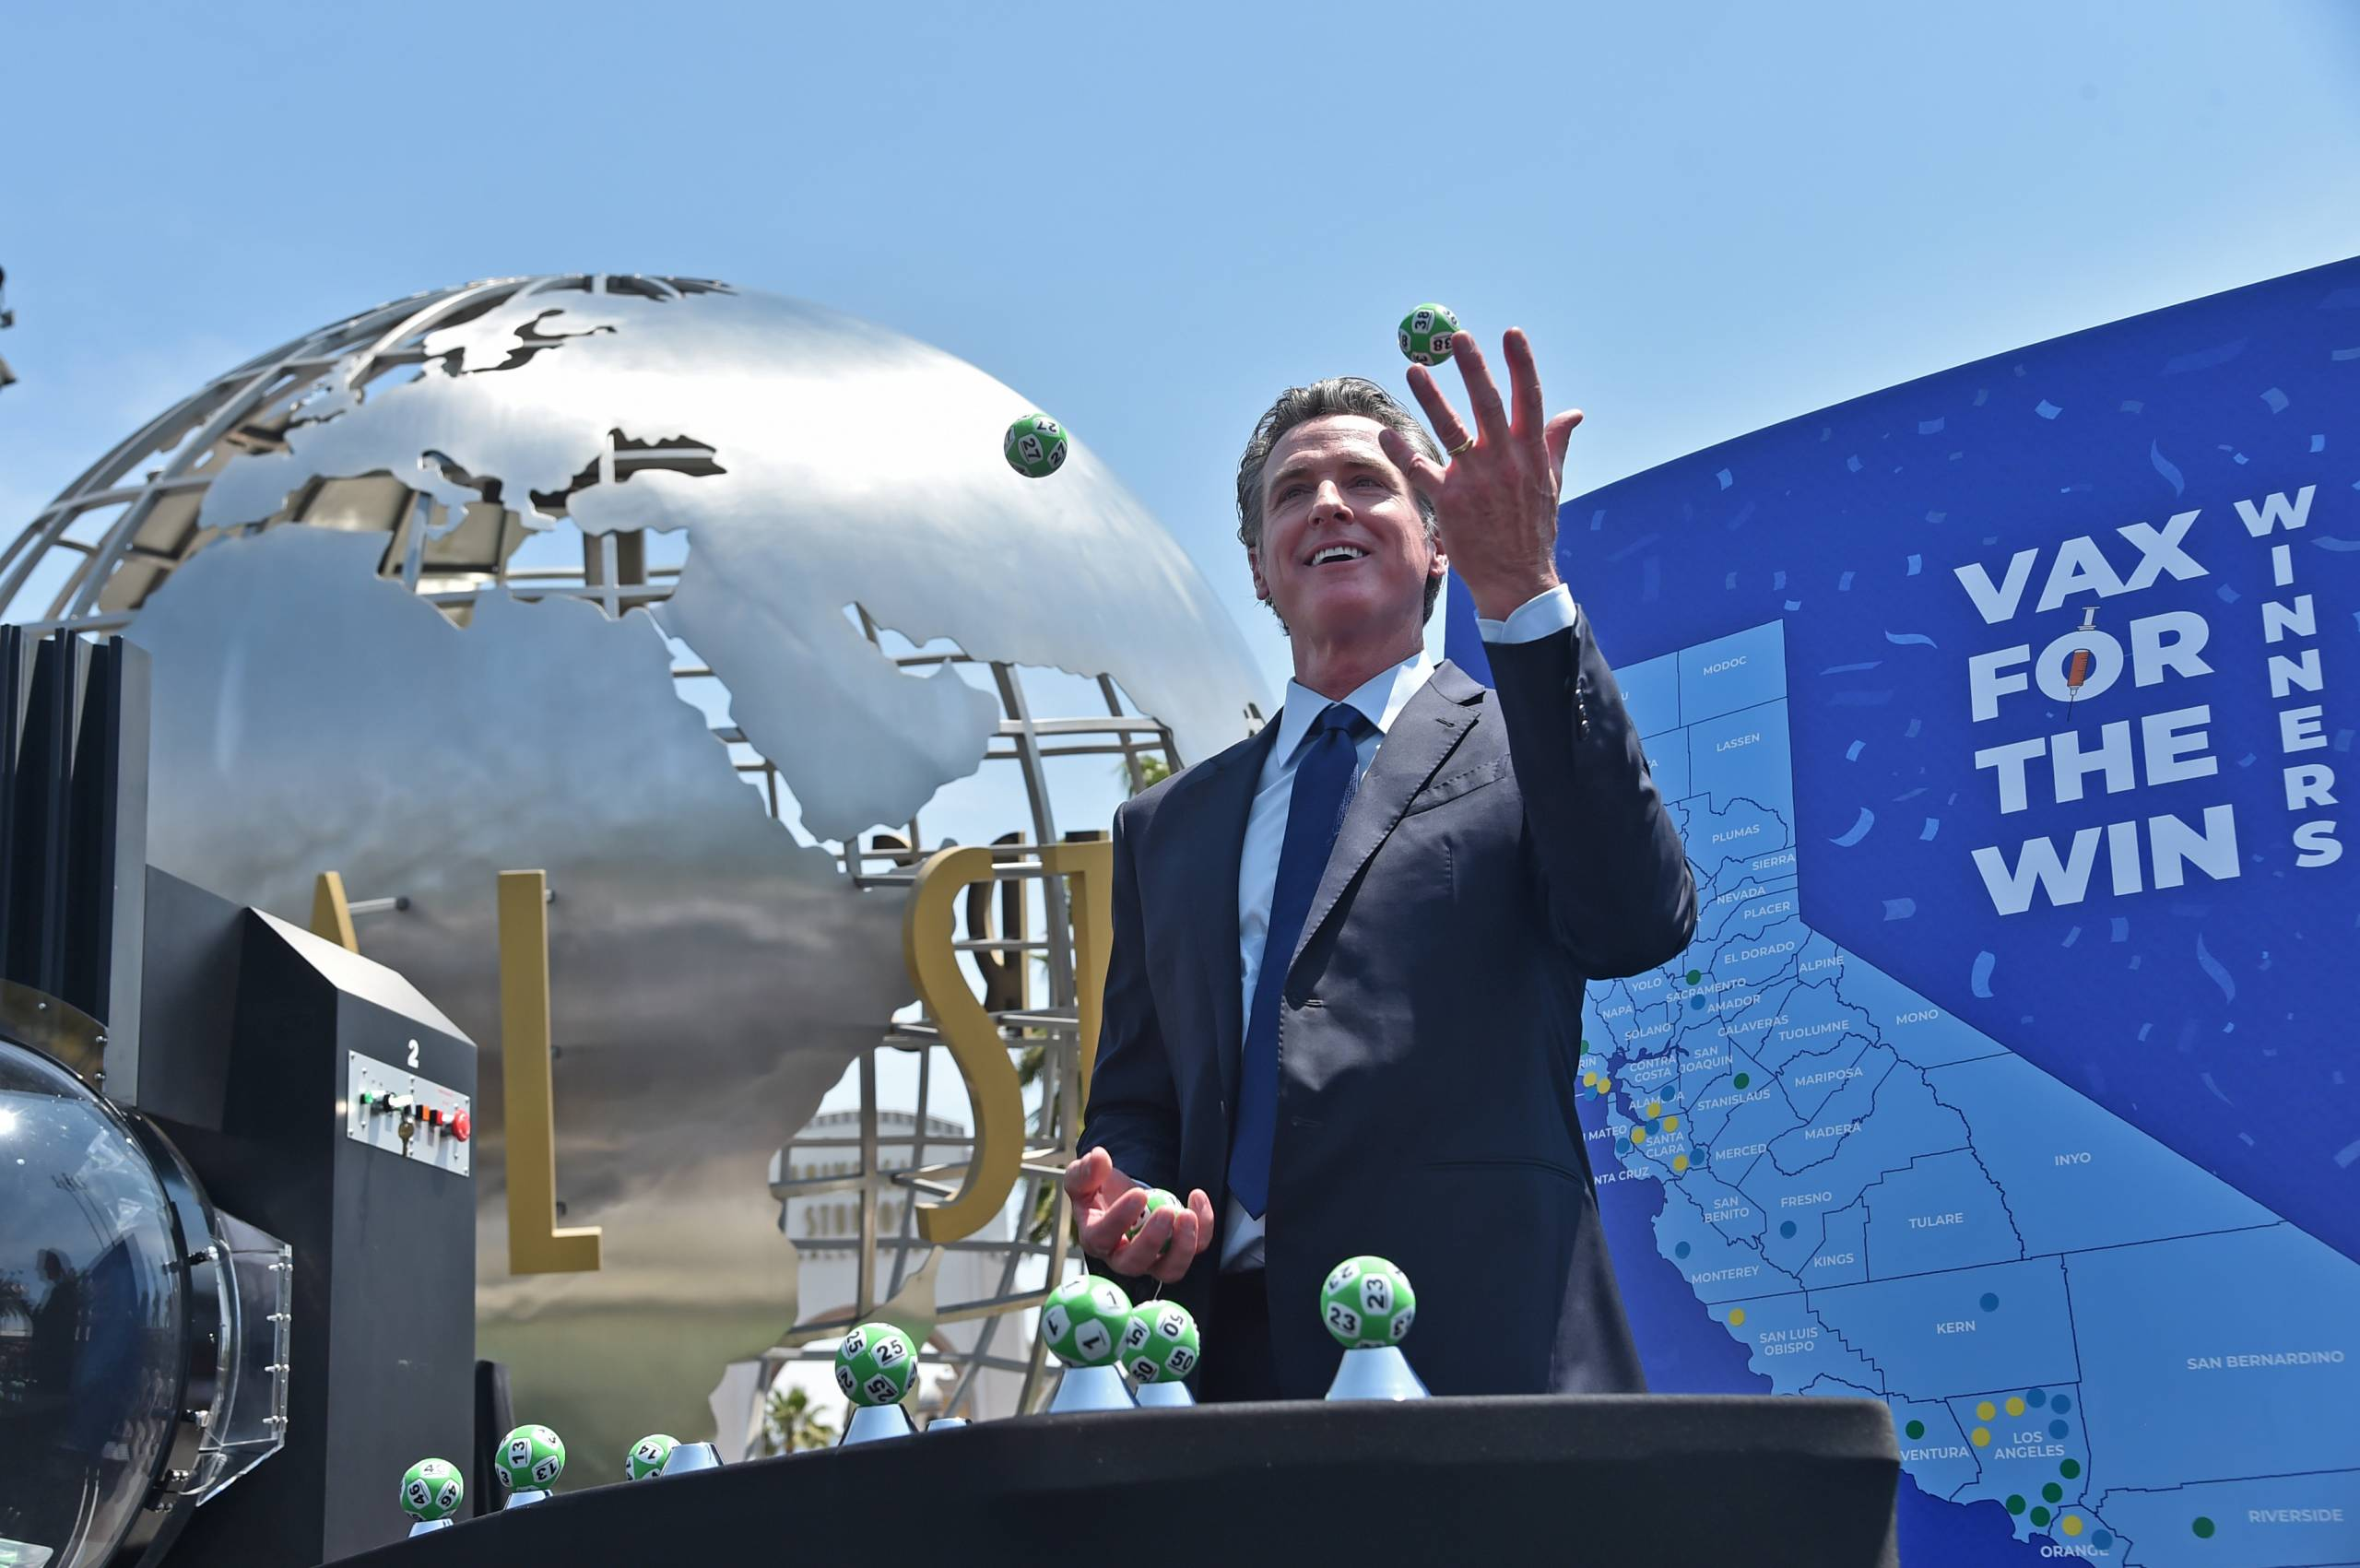 Gov. Newsom throws a few small lottery balls into the air in front of the Universal Studios globe statue.